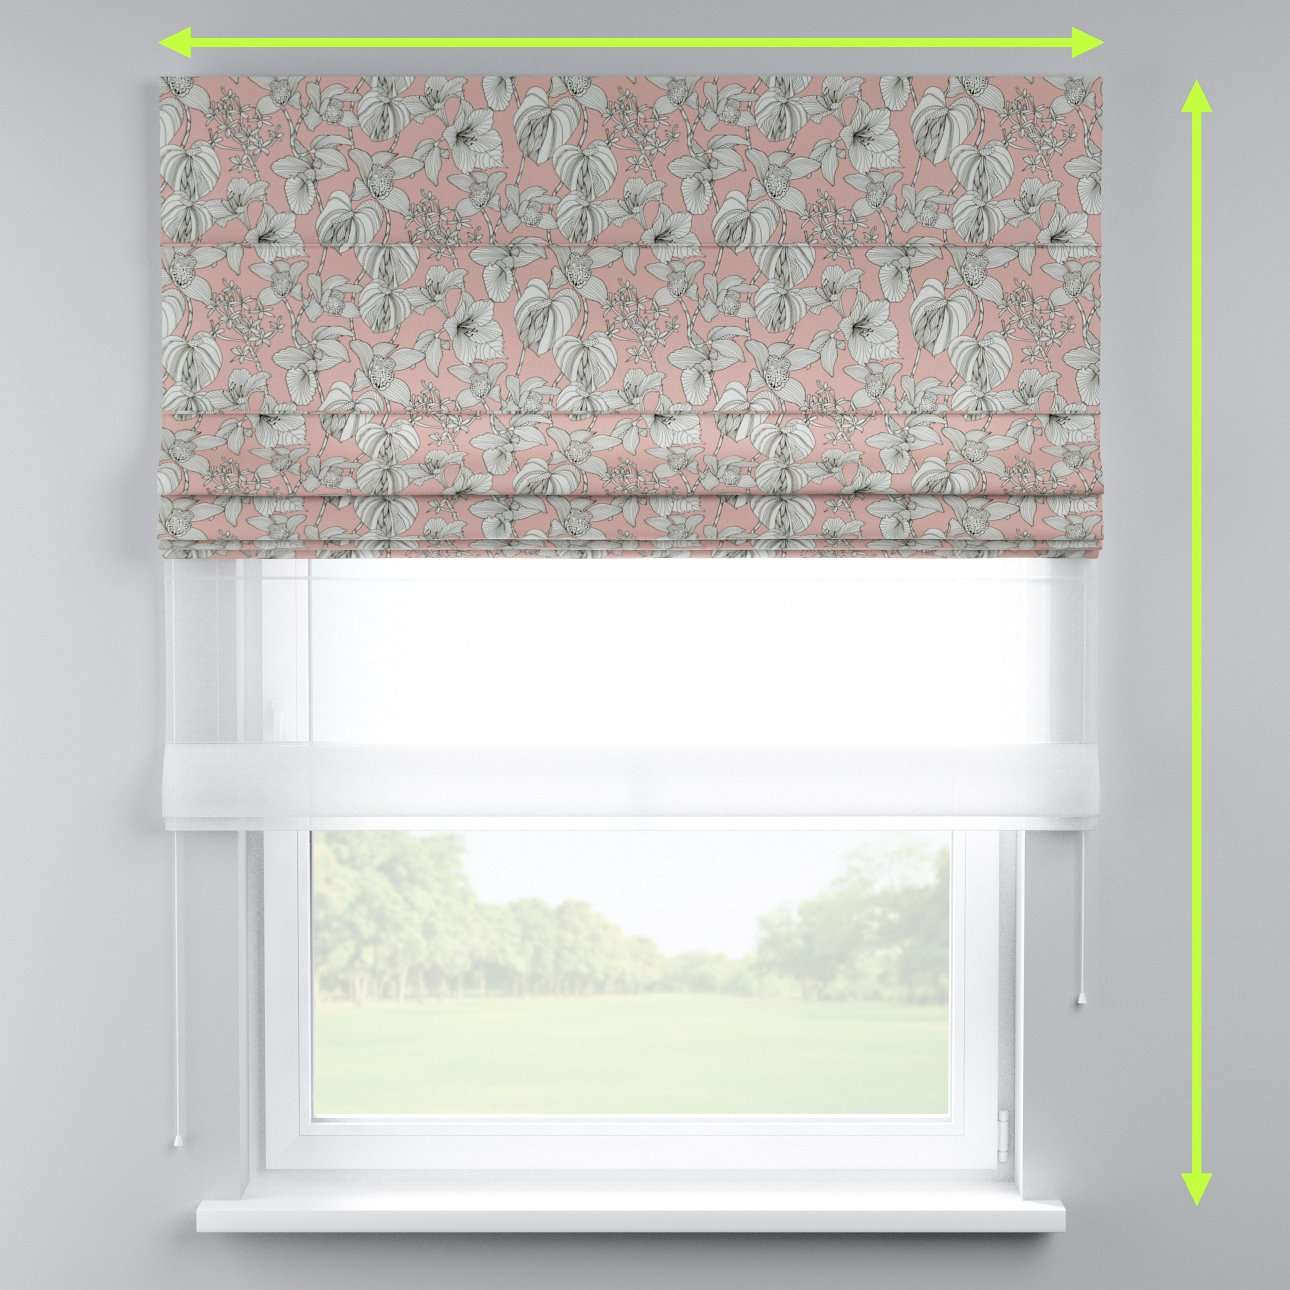 Voile and fabric roman blind (DUO II) in collection Brooklyn, fabric: 137-74